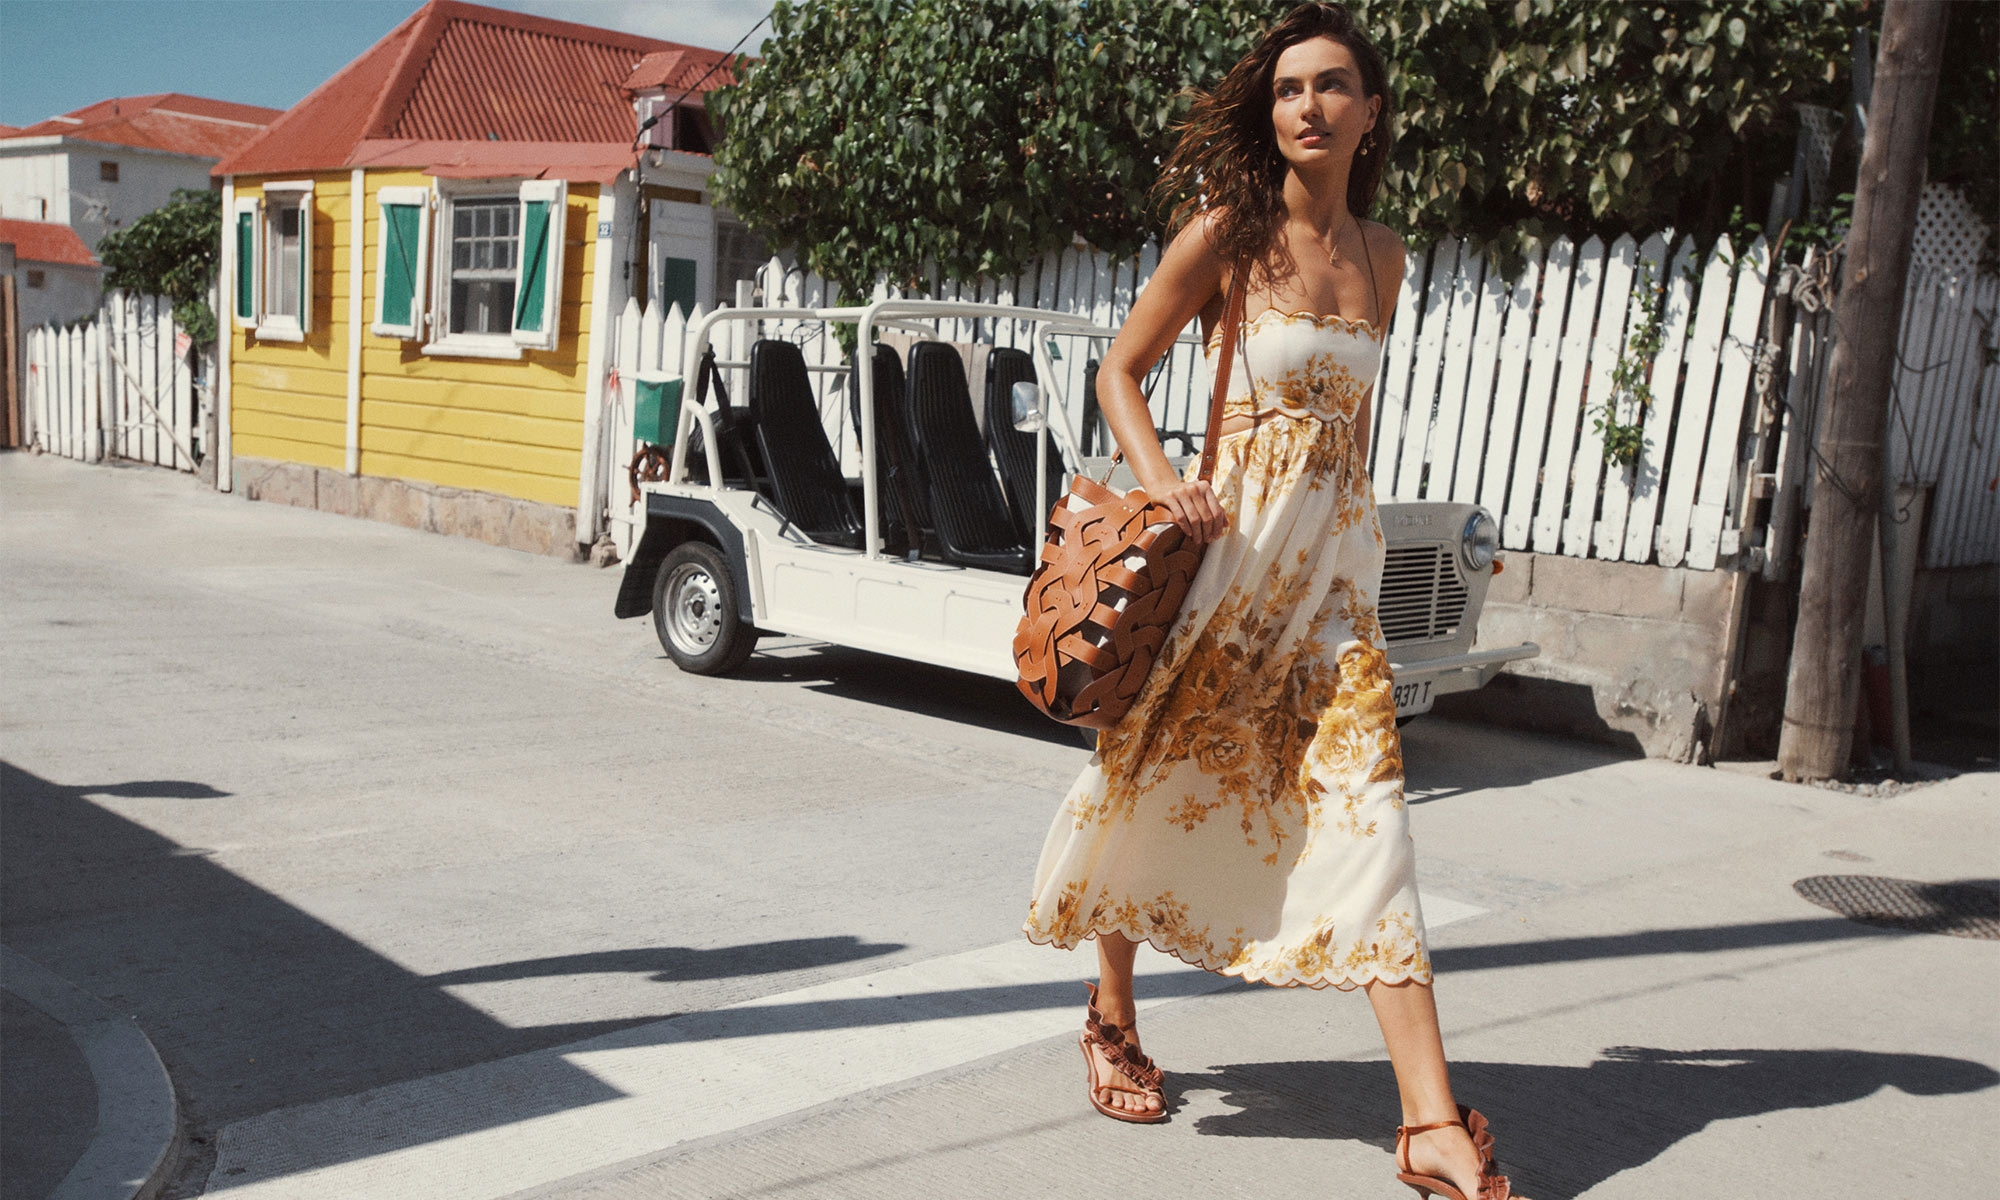 Aliane Scallop Midi Dress, Amber Floral , Bell & Dragonfly Hoop Earrings, T-Bar Necklace, Gold, Skinny Strap Ruffle Heel, Cognac, Leather Link Tote, Tan